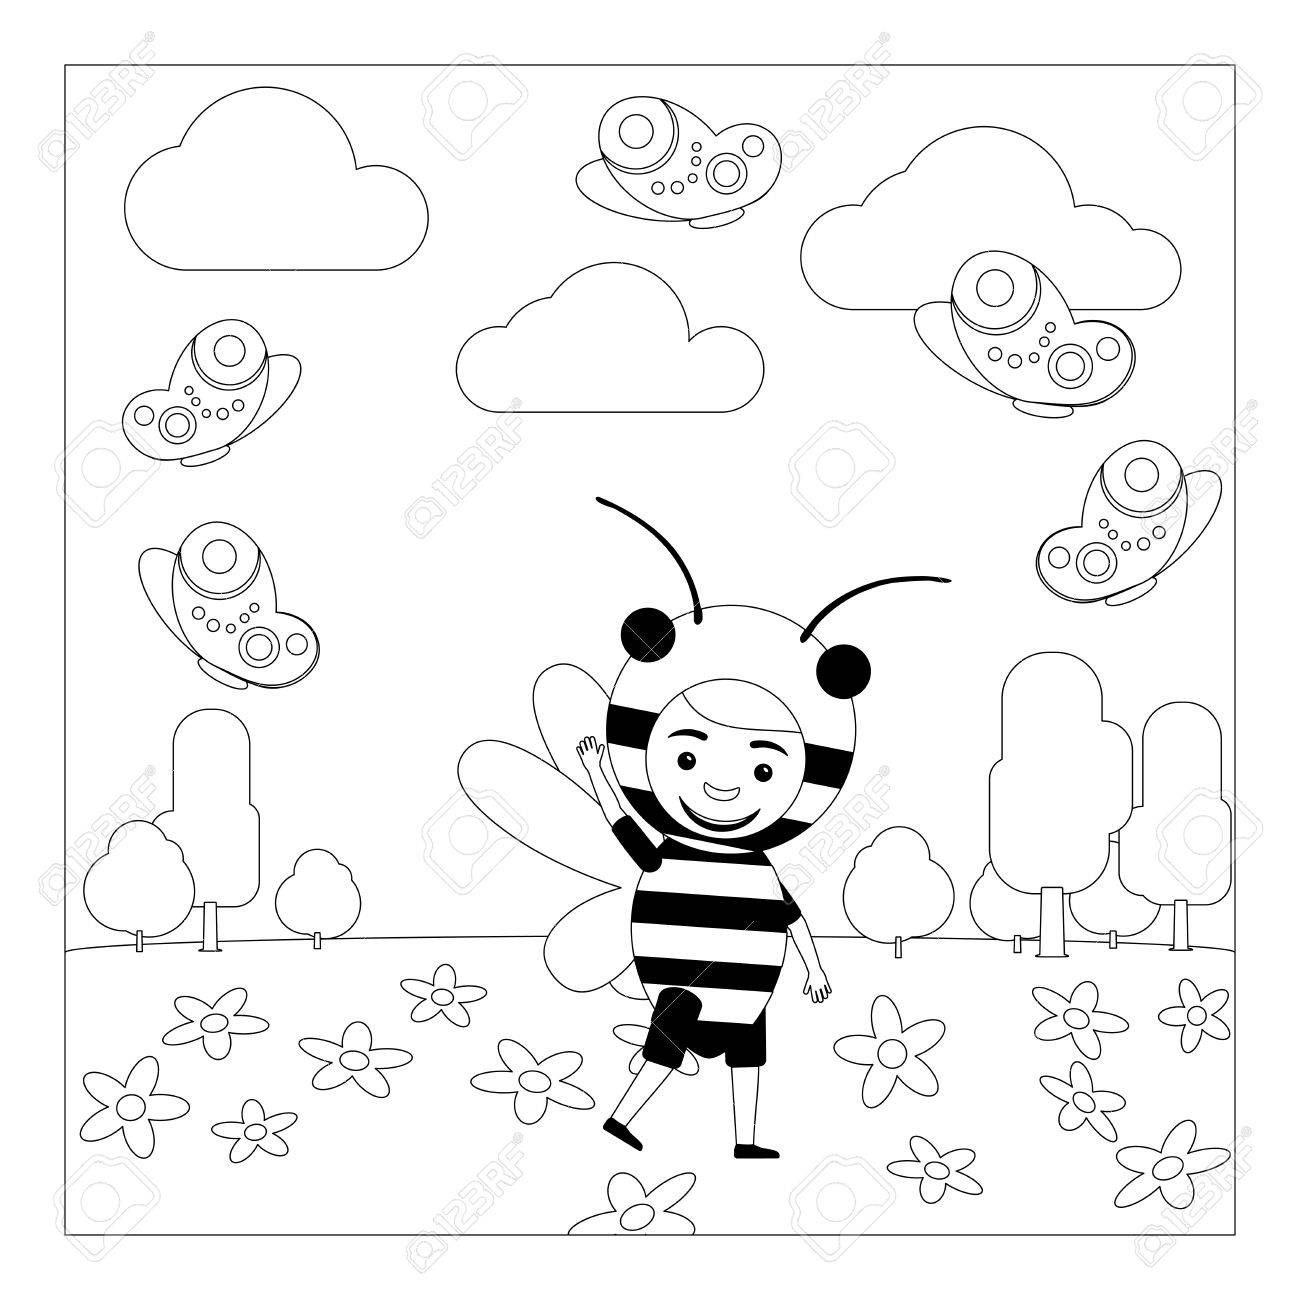 Insects for kids - Insects Kids Coloring Pages   1300x1300